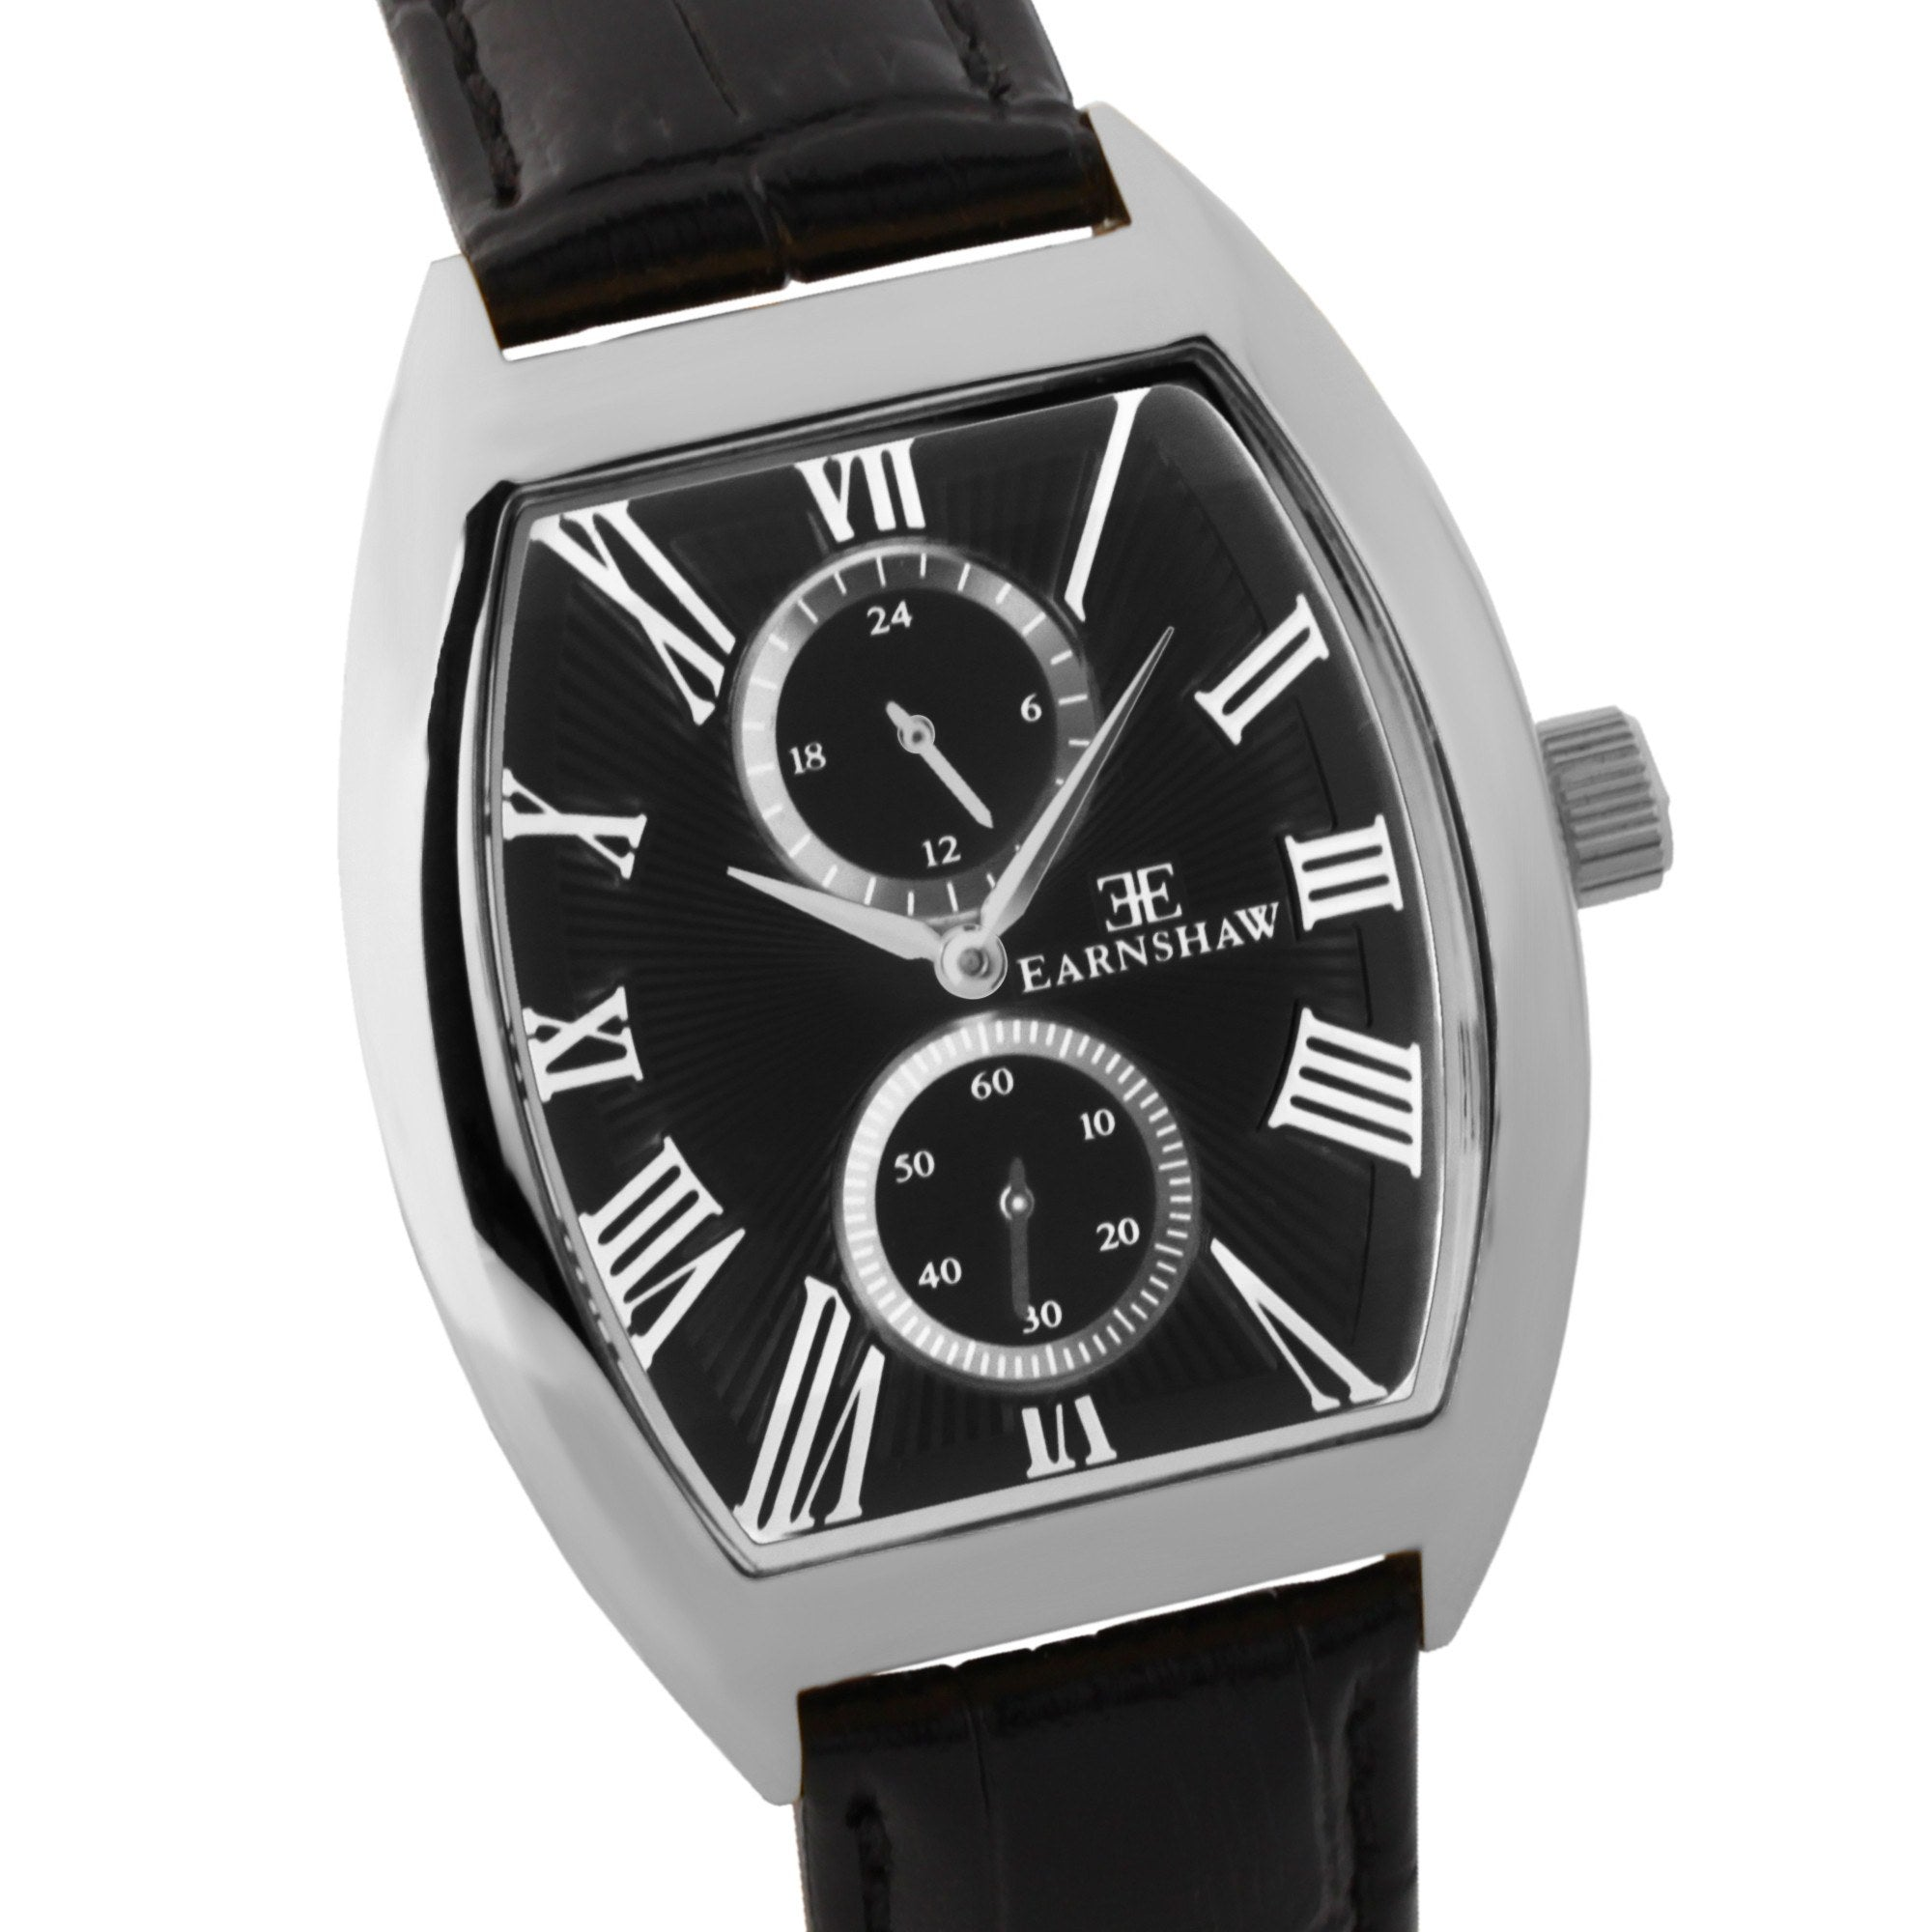 Thomas Earnshaw Men's ES-8004-01 Holborn Stainless Steel Watch with Black Leather Strap